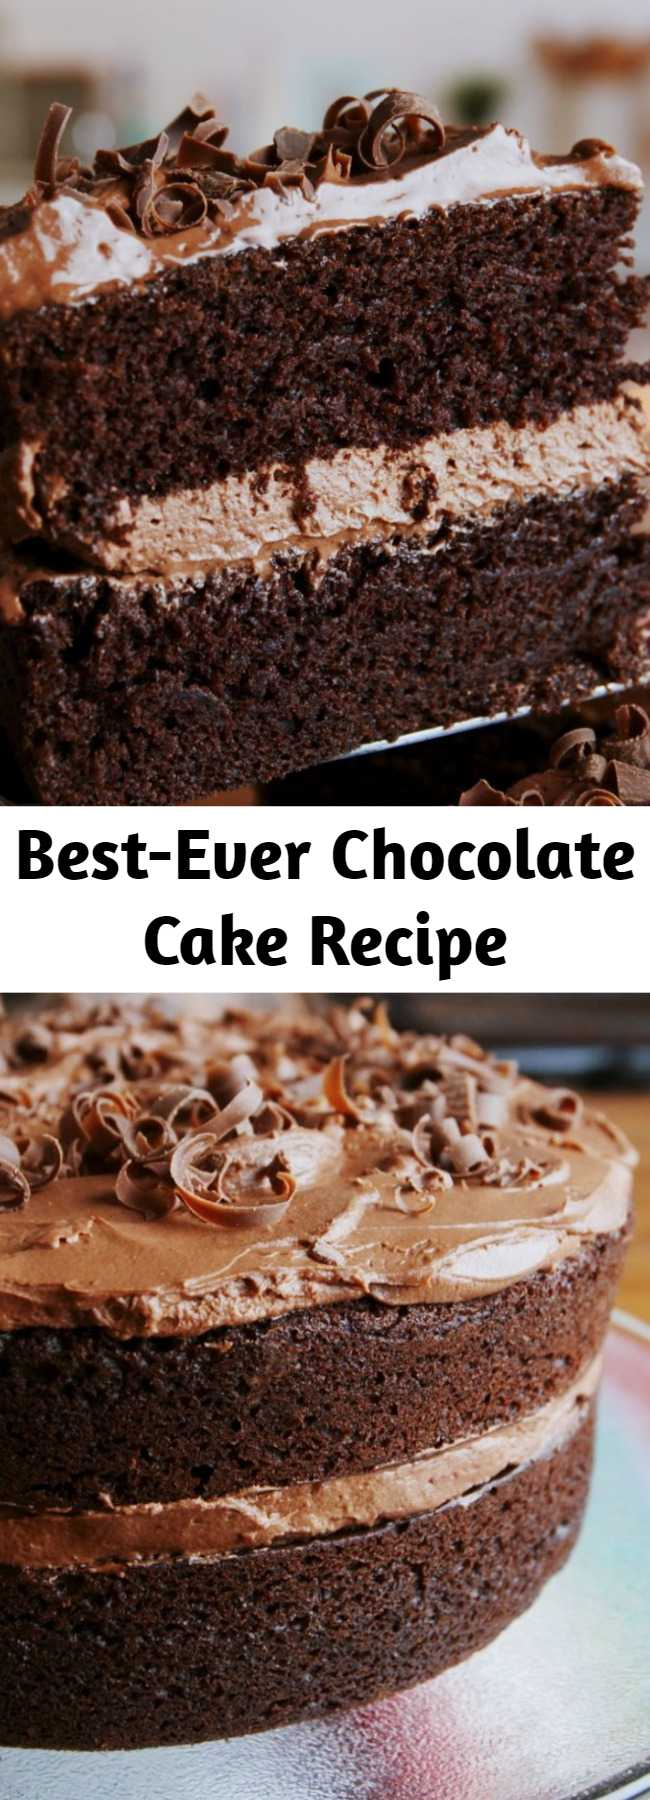 Best-Ever Chocolate Cake Recipe - Ever feel like chocolate cake just isn't... chocolatey enough? Chocolate lovers, meet your new favorite cake. This cake triples down on chocolate flavor with cocoa powder, chocolate chips, and some brewed coffee and espresso powder to bump up that chocolate flavor.